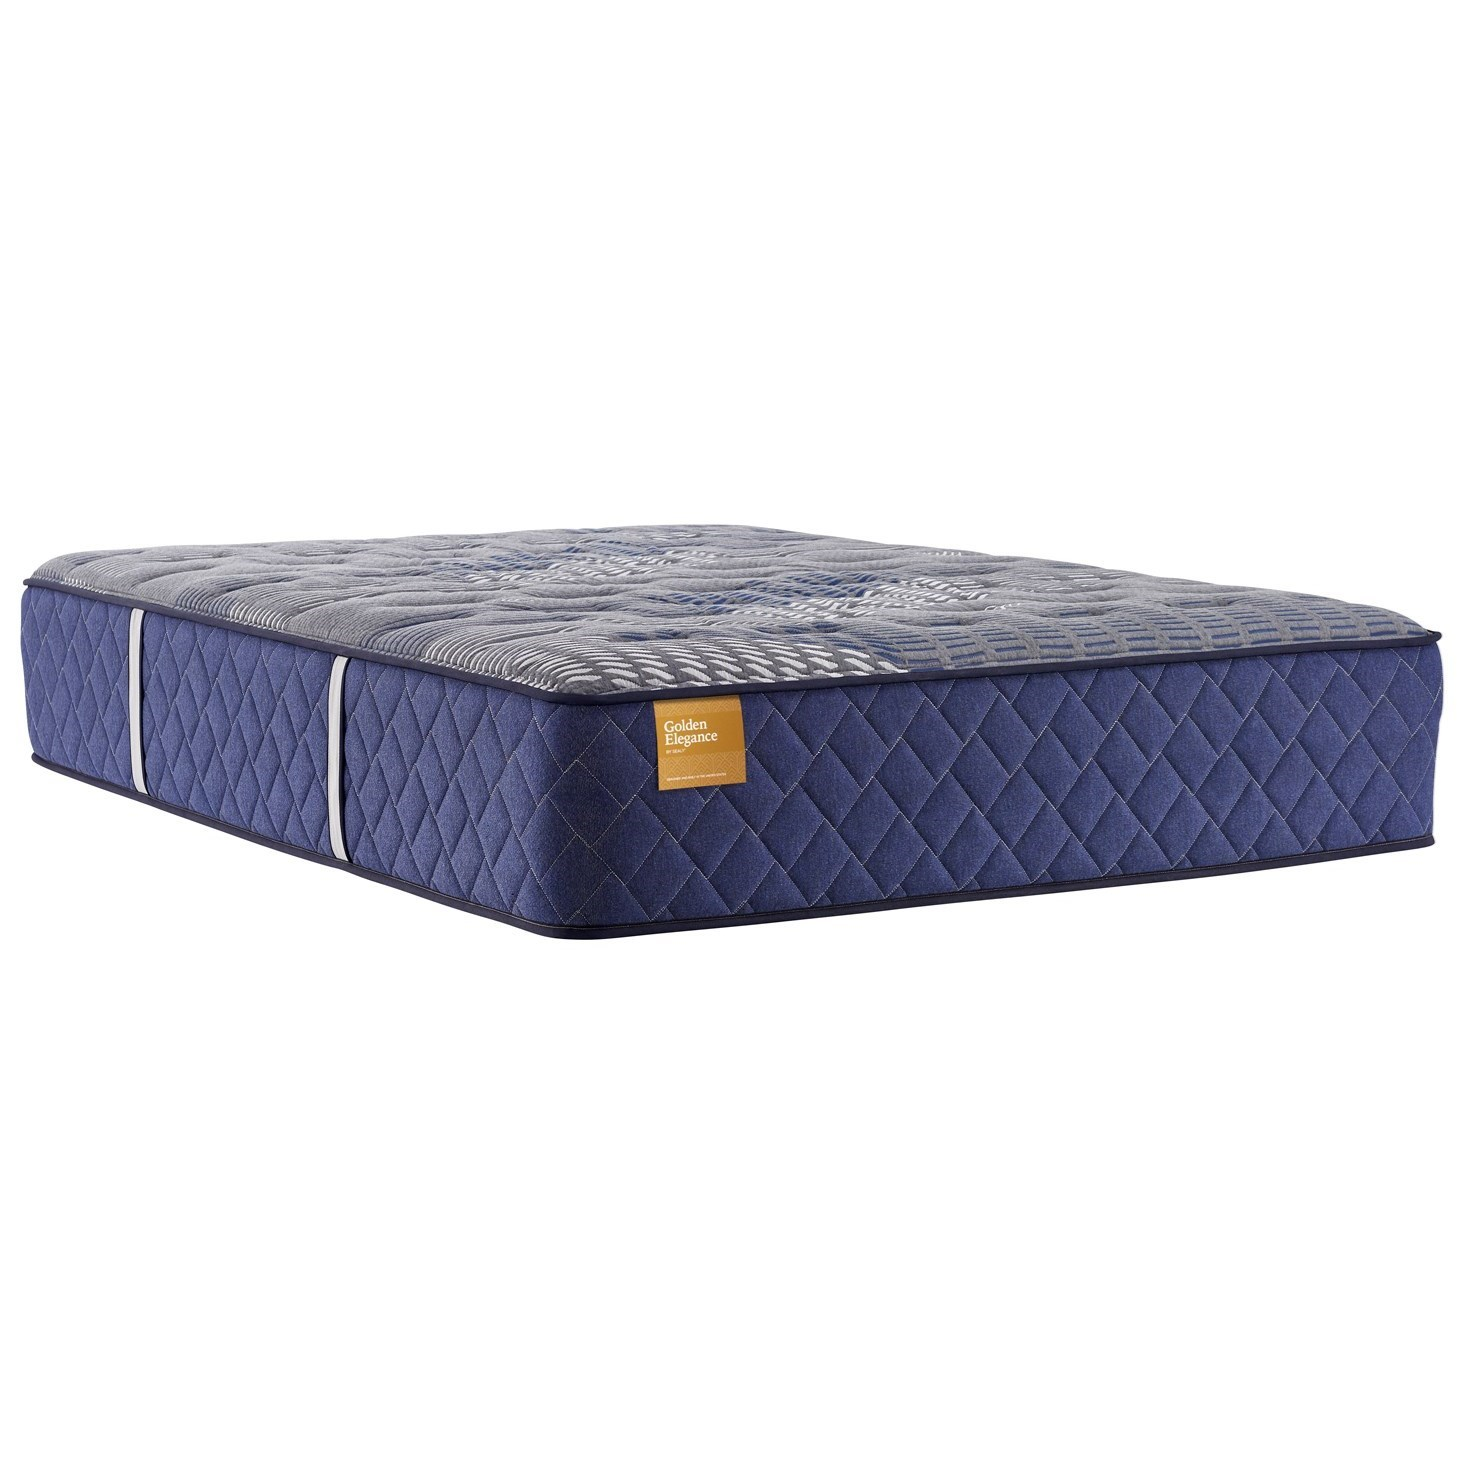 "Rose Gold Firm Hybrid TT B8 Queen 15"" Firm Hybrid Mattress by Sealy at Household Furniture"